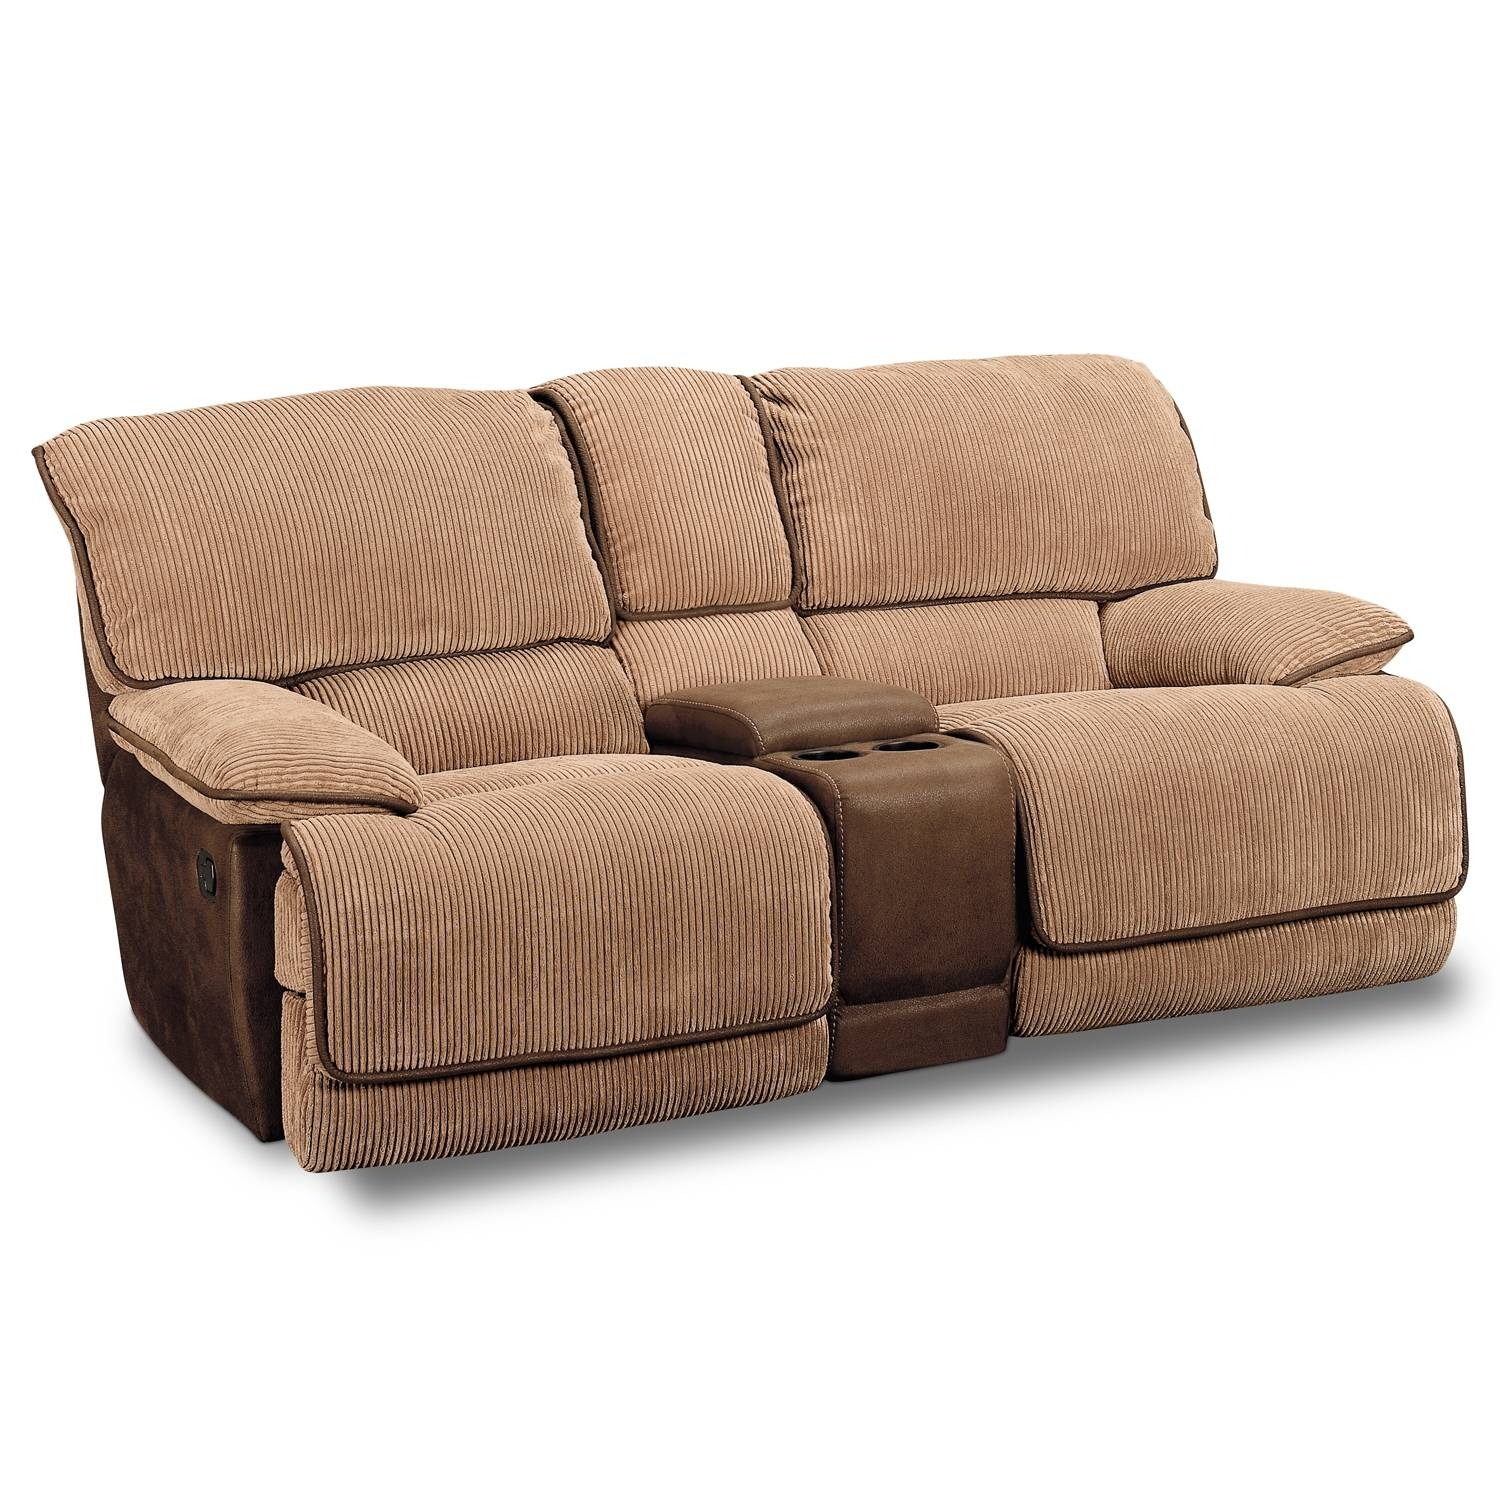 Slipcovers For Recliner Sofa 36 With Slipcovers For Recliner Sofa intended for Slipcover for Reclining Sofas (Image 8 of 15)